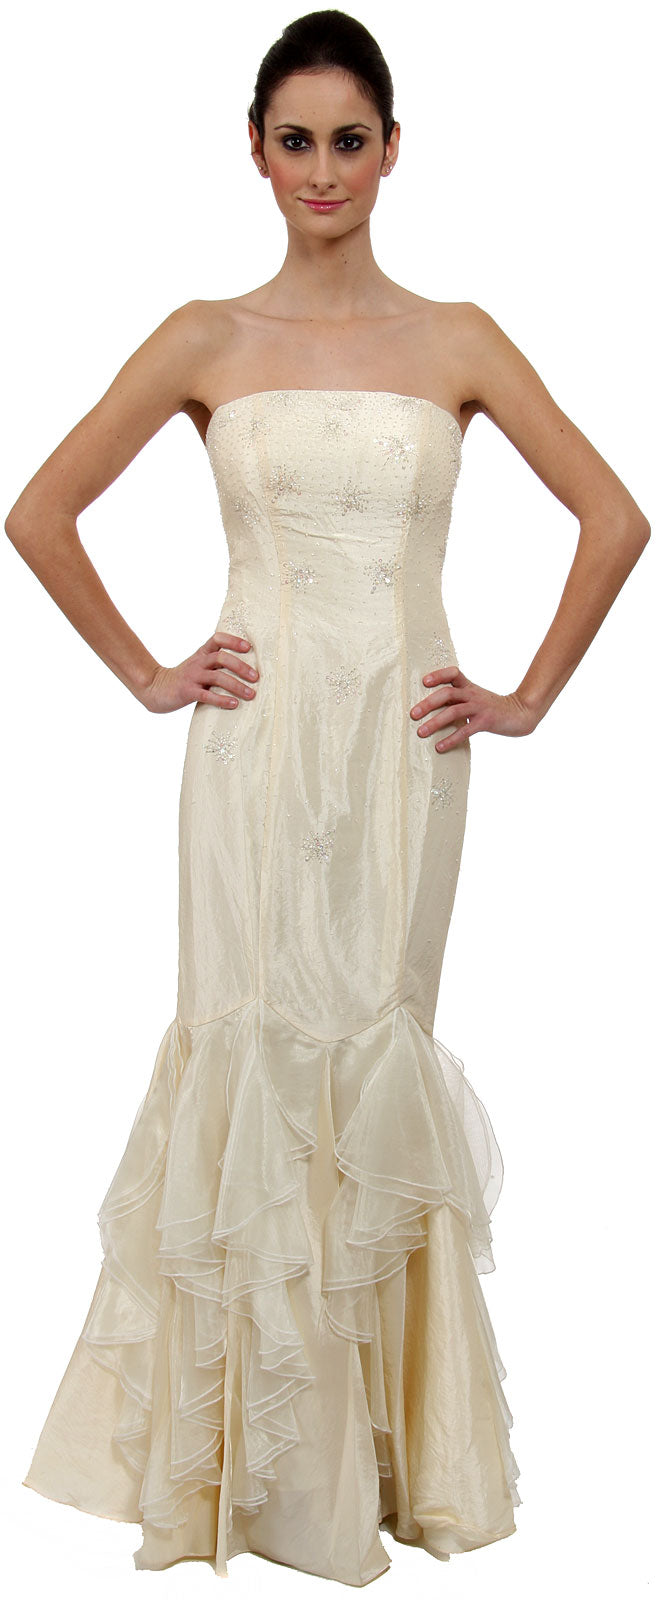 Image of Beaded Mermaid Cut Style And Ruffled Prom Dress in Ivory